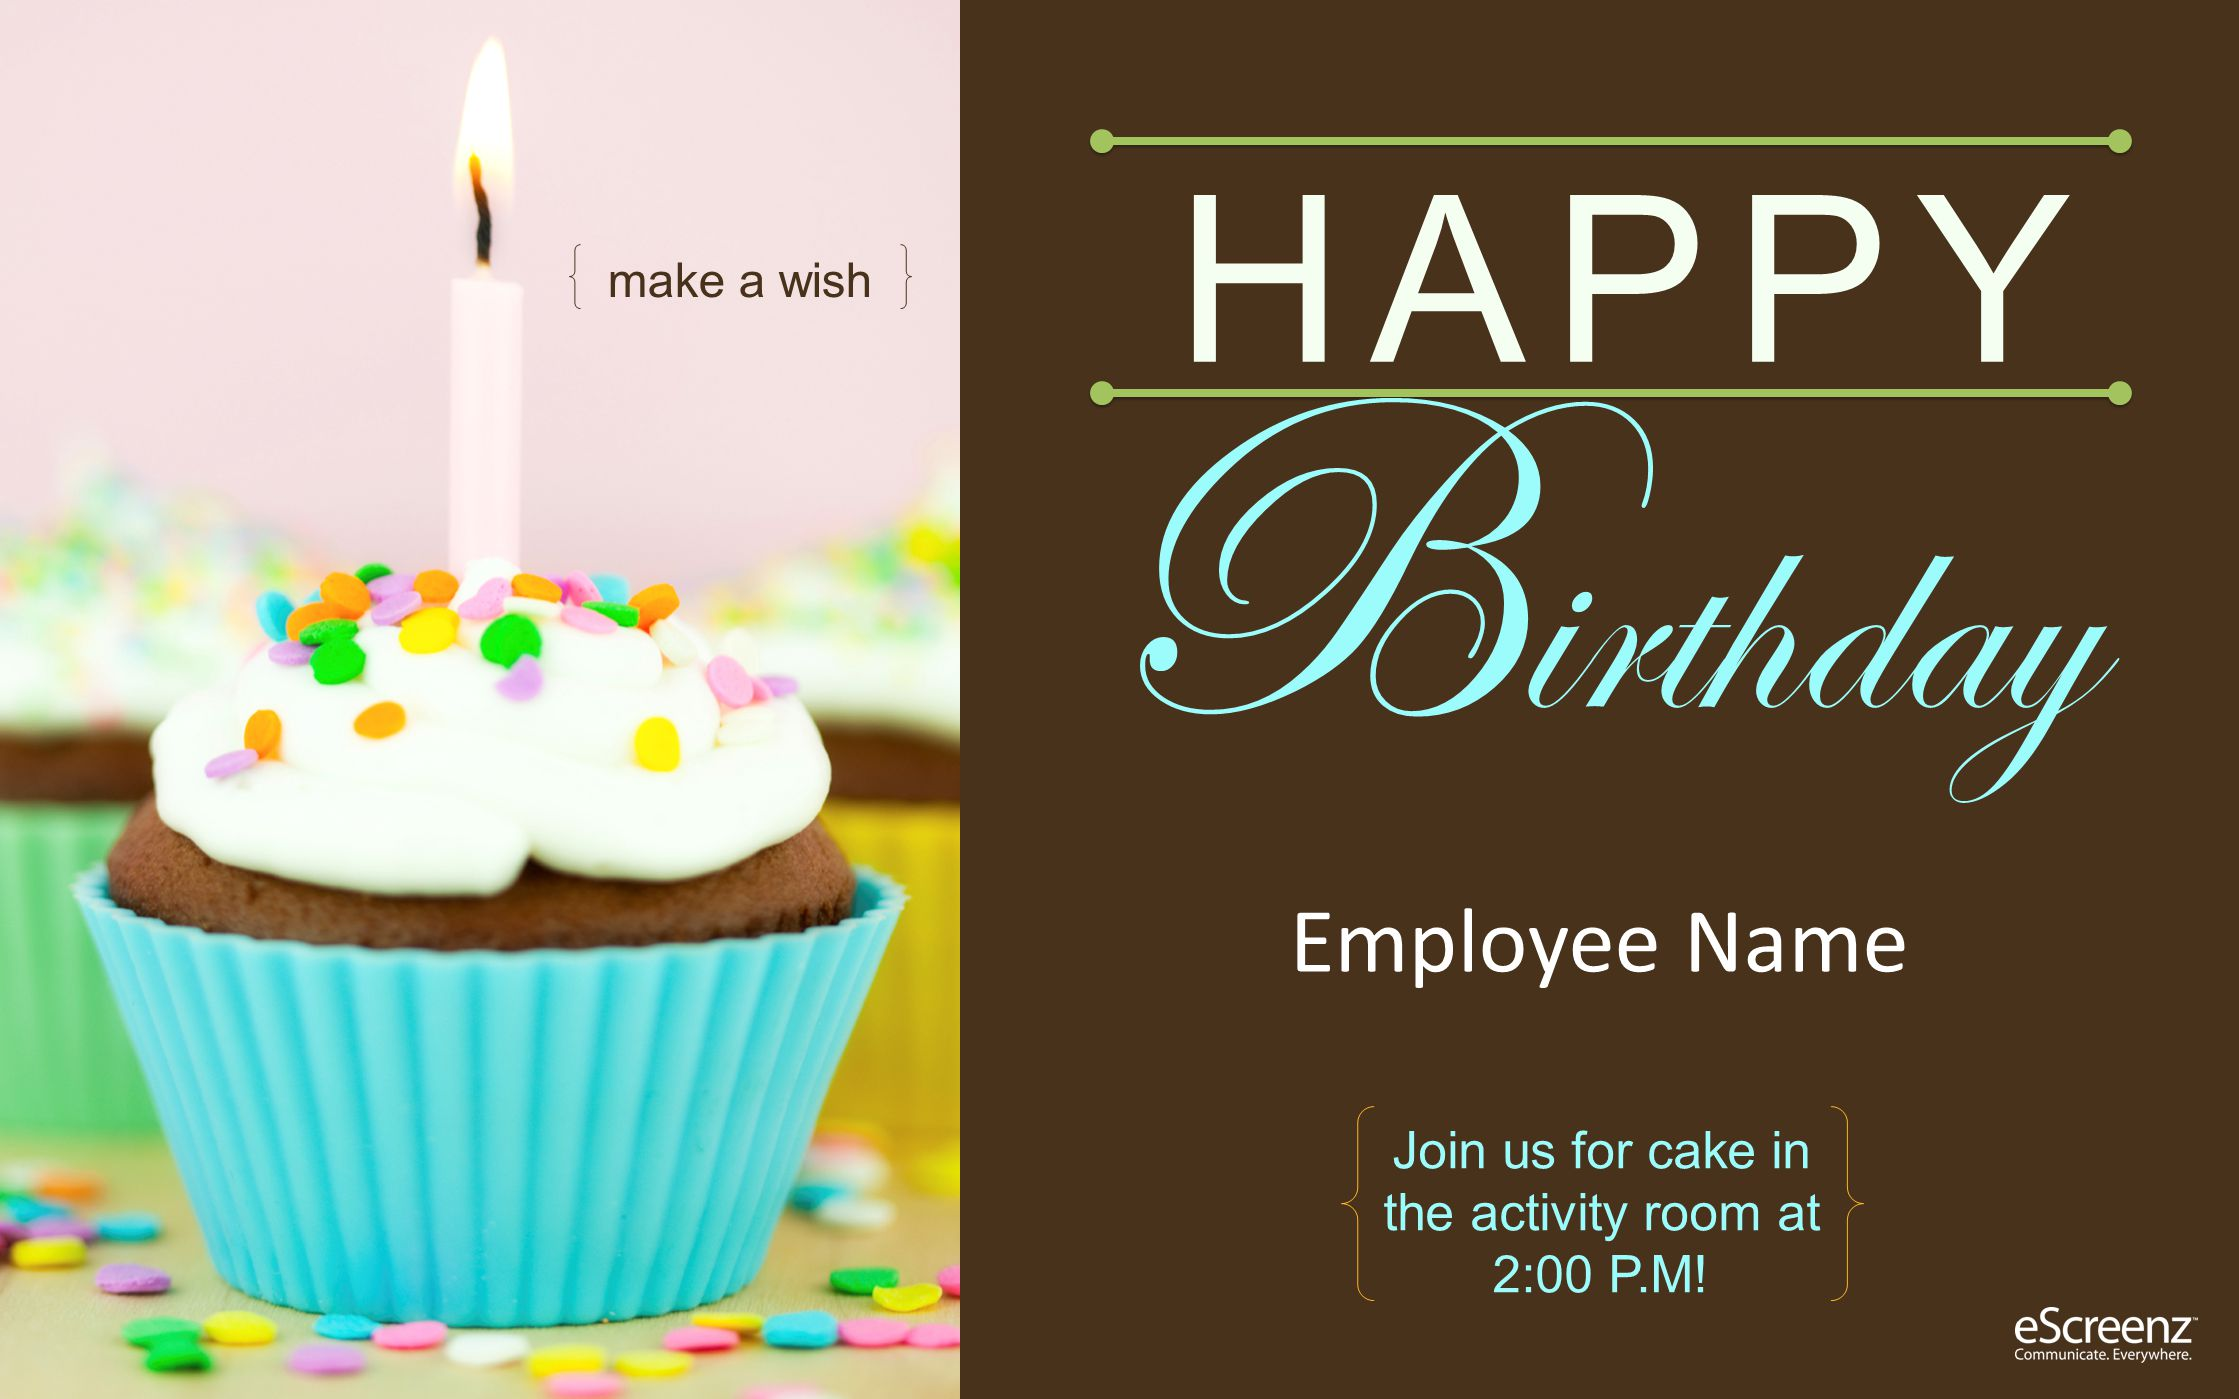 make a wish Employee Name Join us for cake in the activity room at 2:00 P.M! HAPPY B irthday